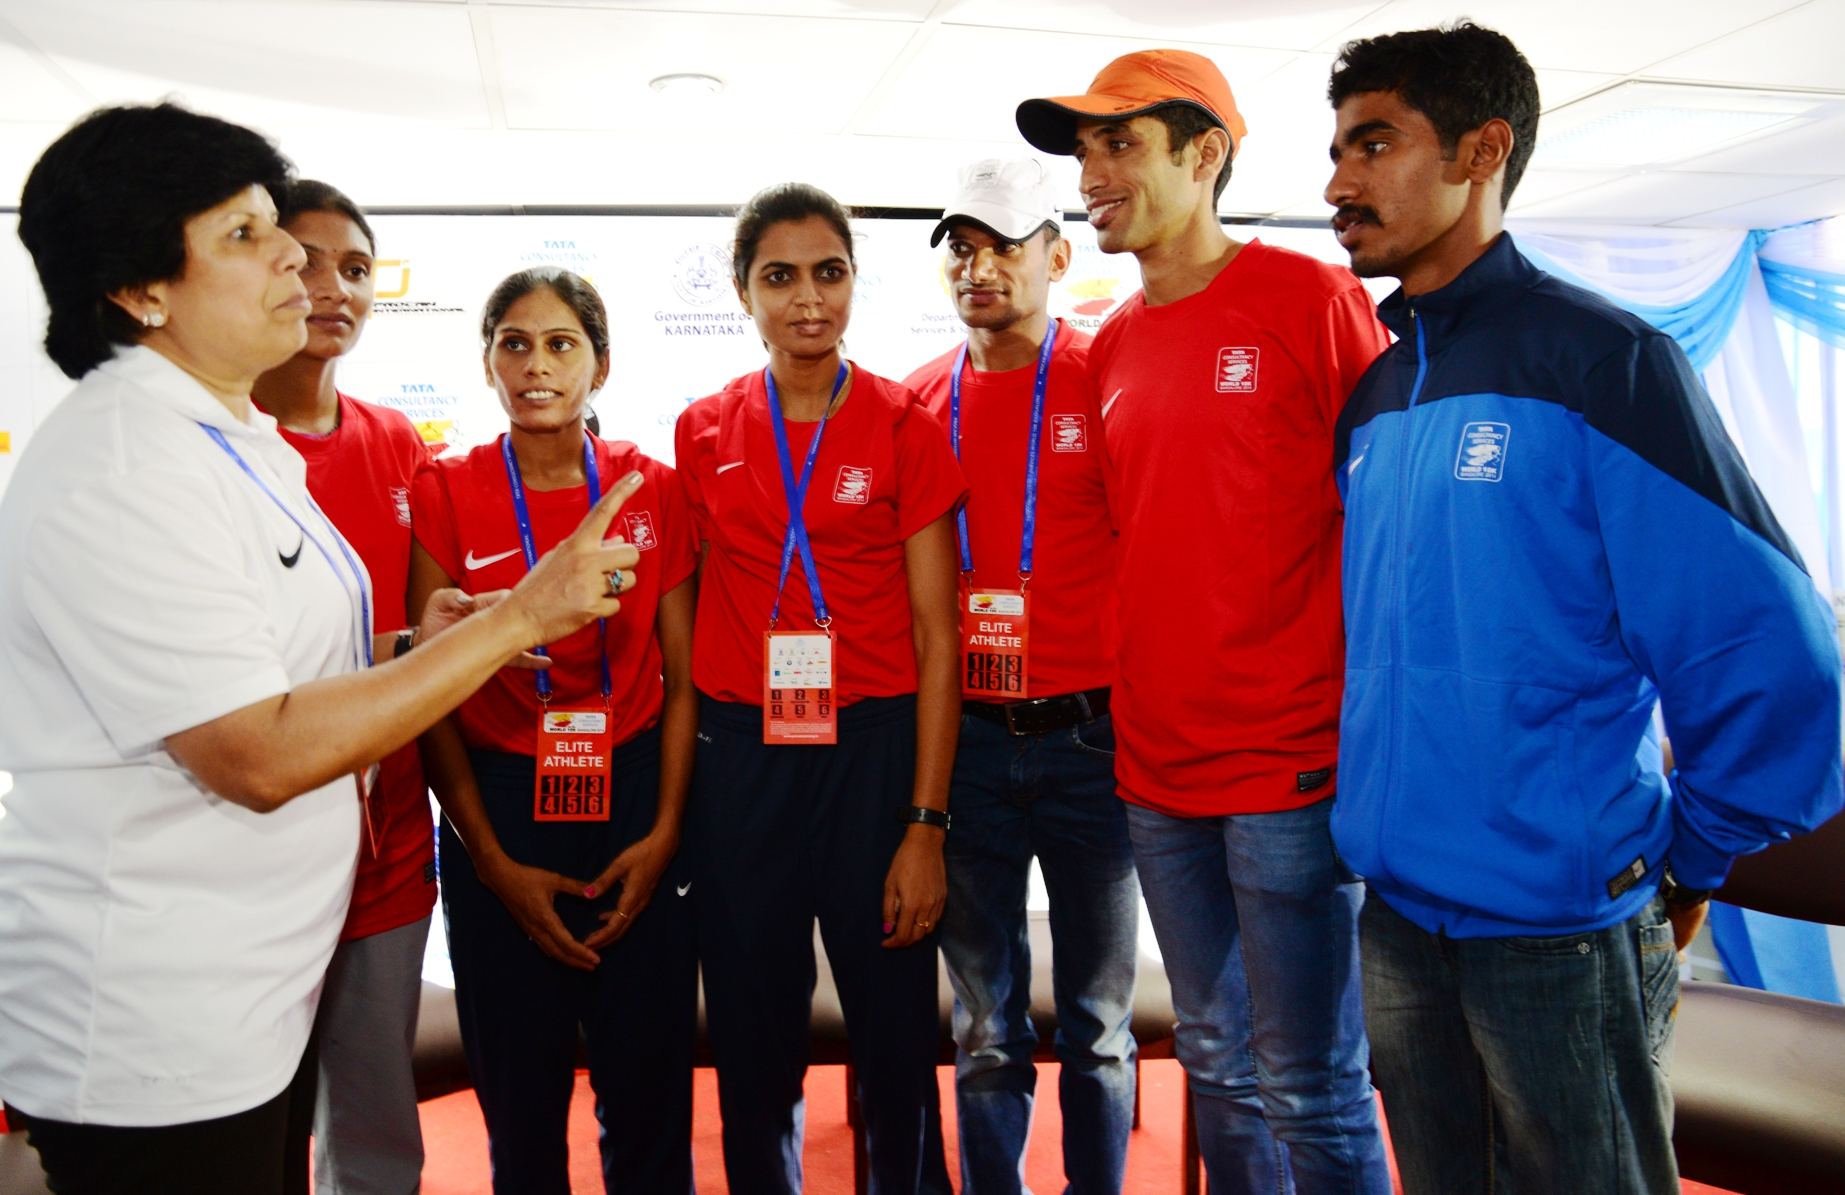 Sunita Godara (Indian Elite Athletes Co-ordinator) along with Indian Elite Athletes (L toR), Ritu Pal, Vijaymala Patil, Priyanka Singh, V L Dangi, B. C. Tilak and Balliappa A.B. at the Meet & Greet of the TCS World 10K Bangalore on Saturday